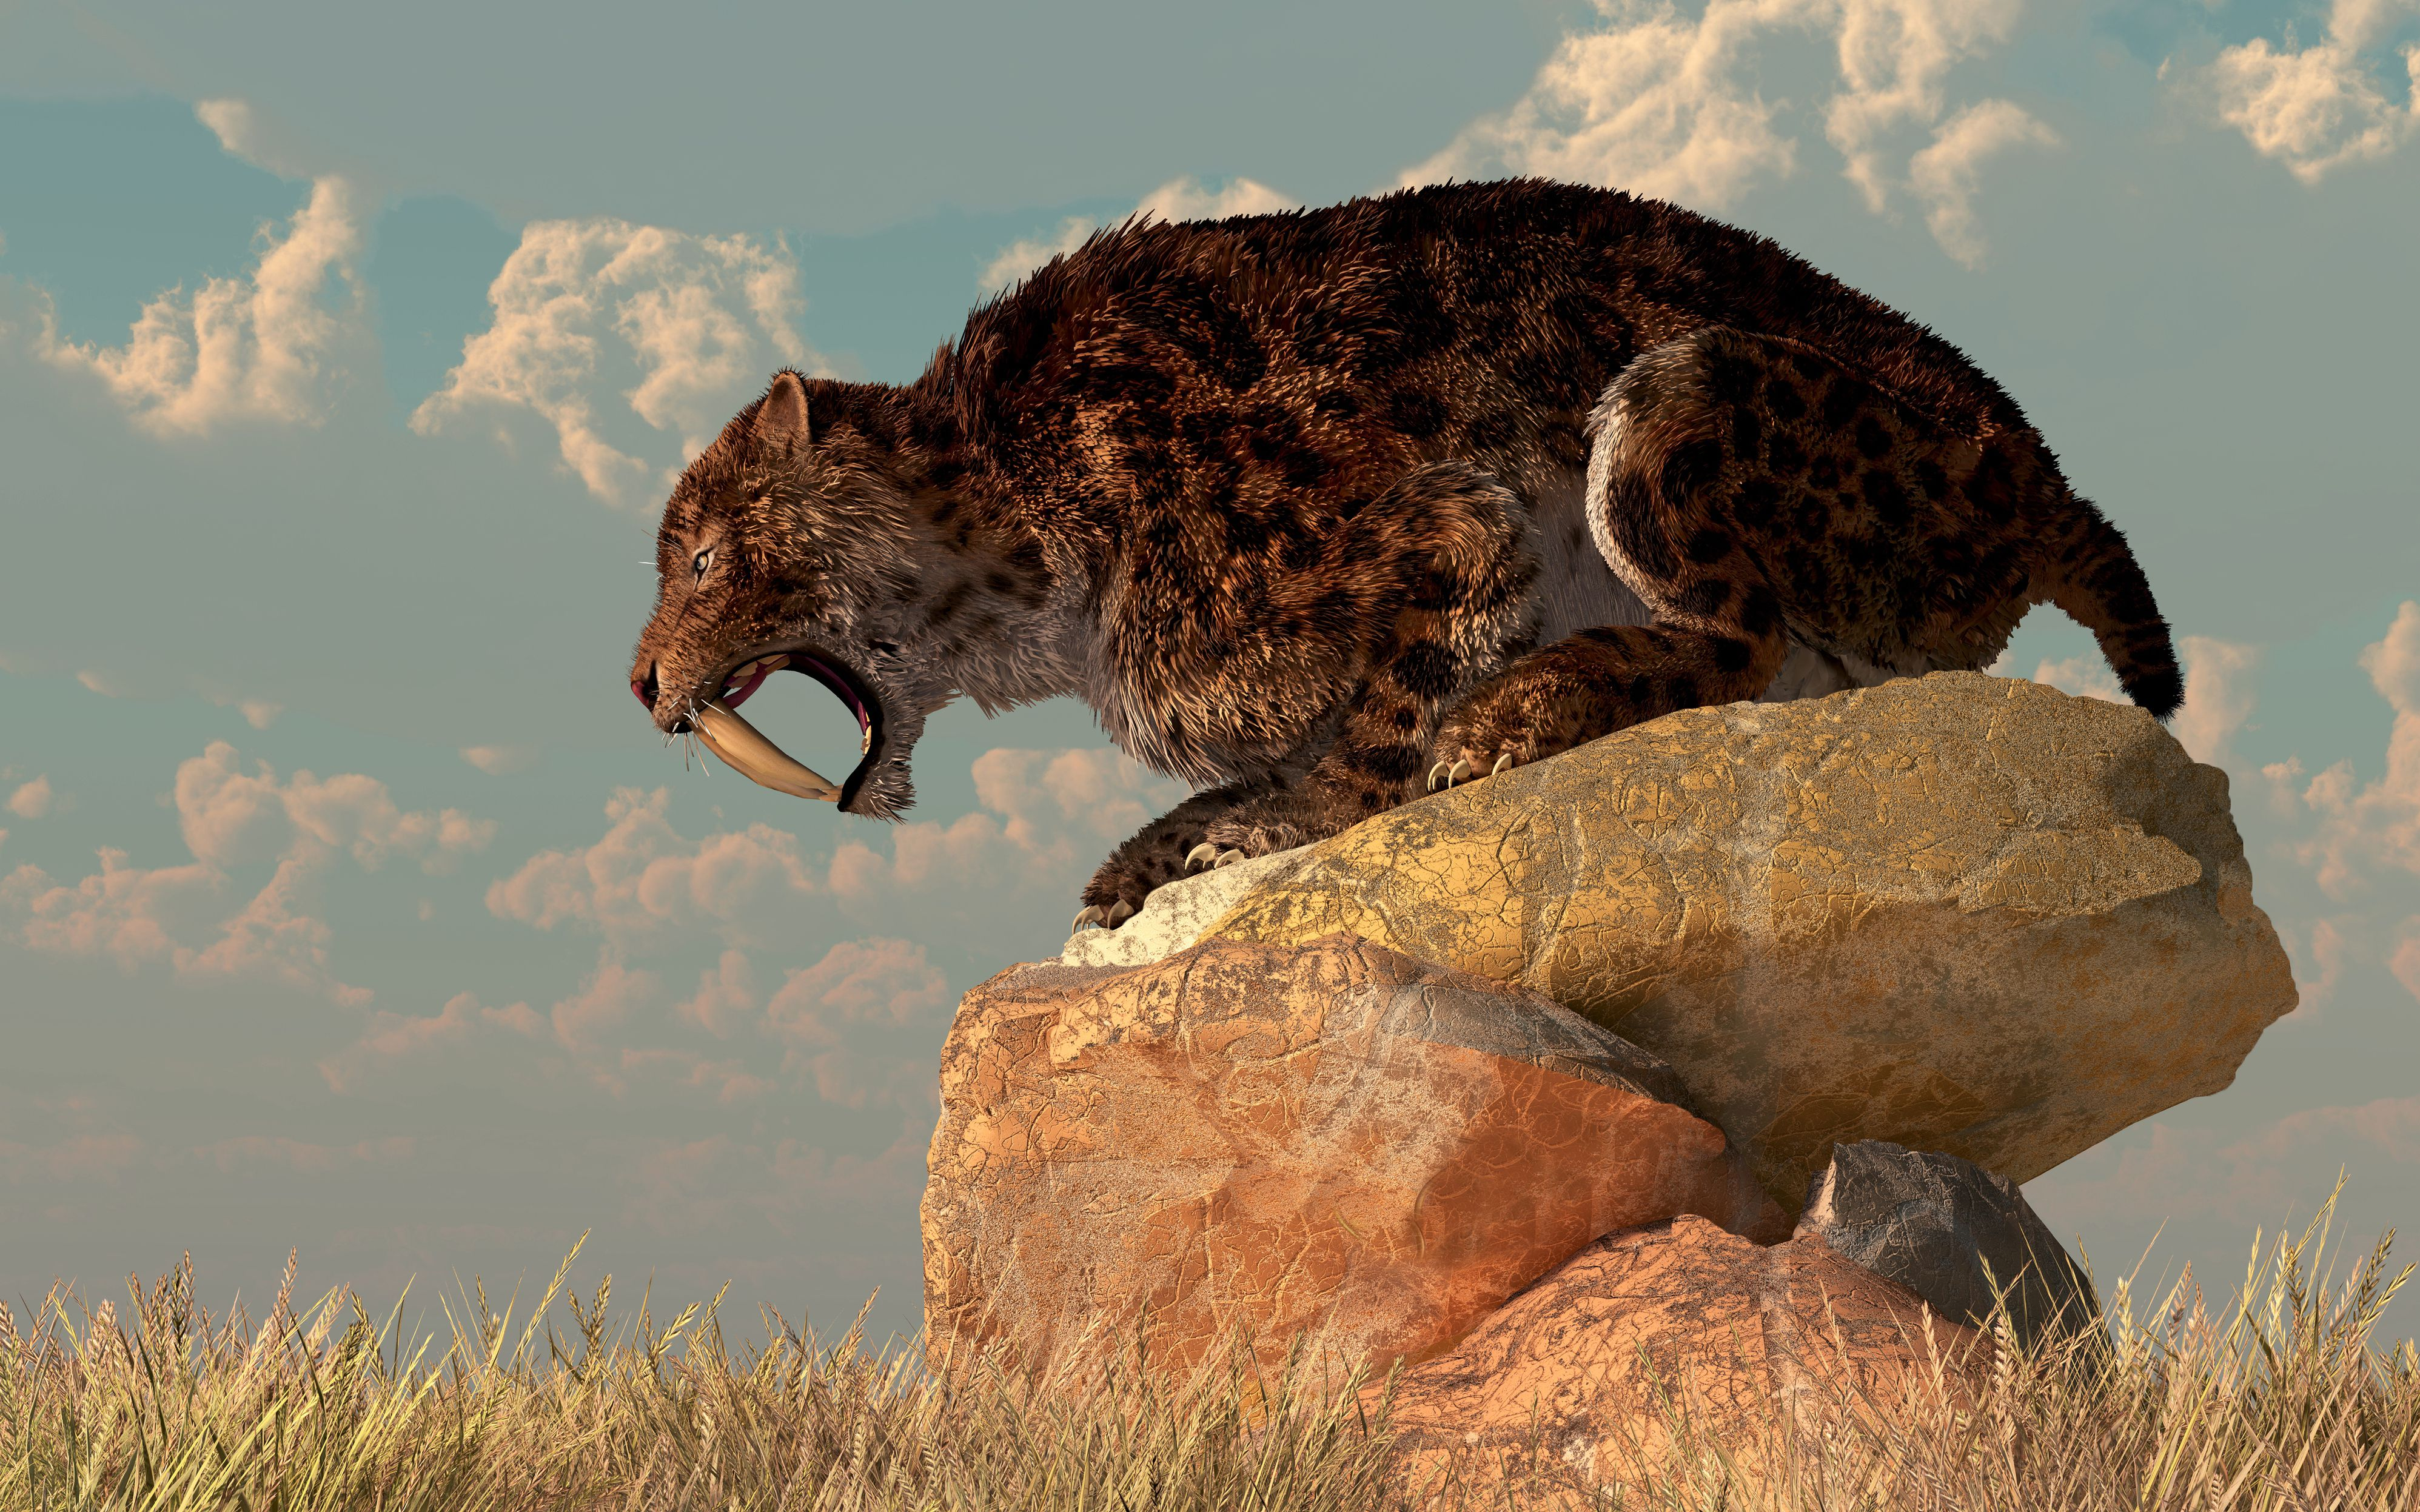 A Smilodon sits on a rock surrounded by golden fall fields.